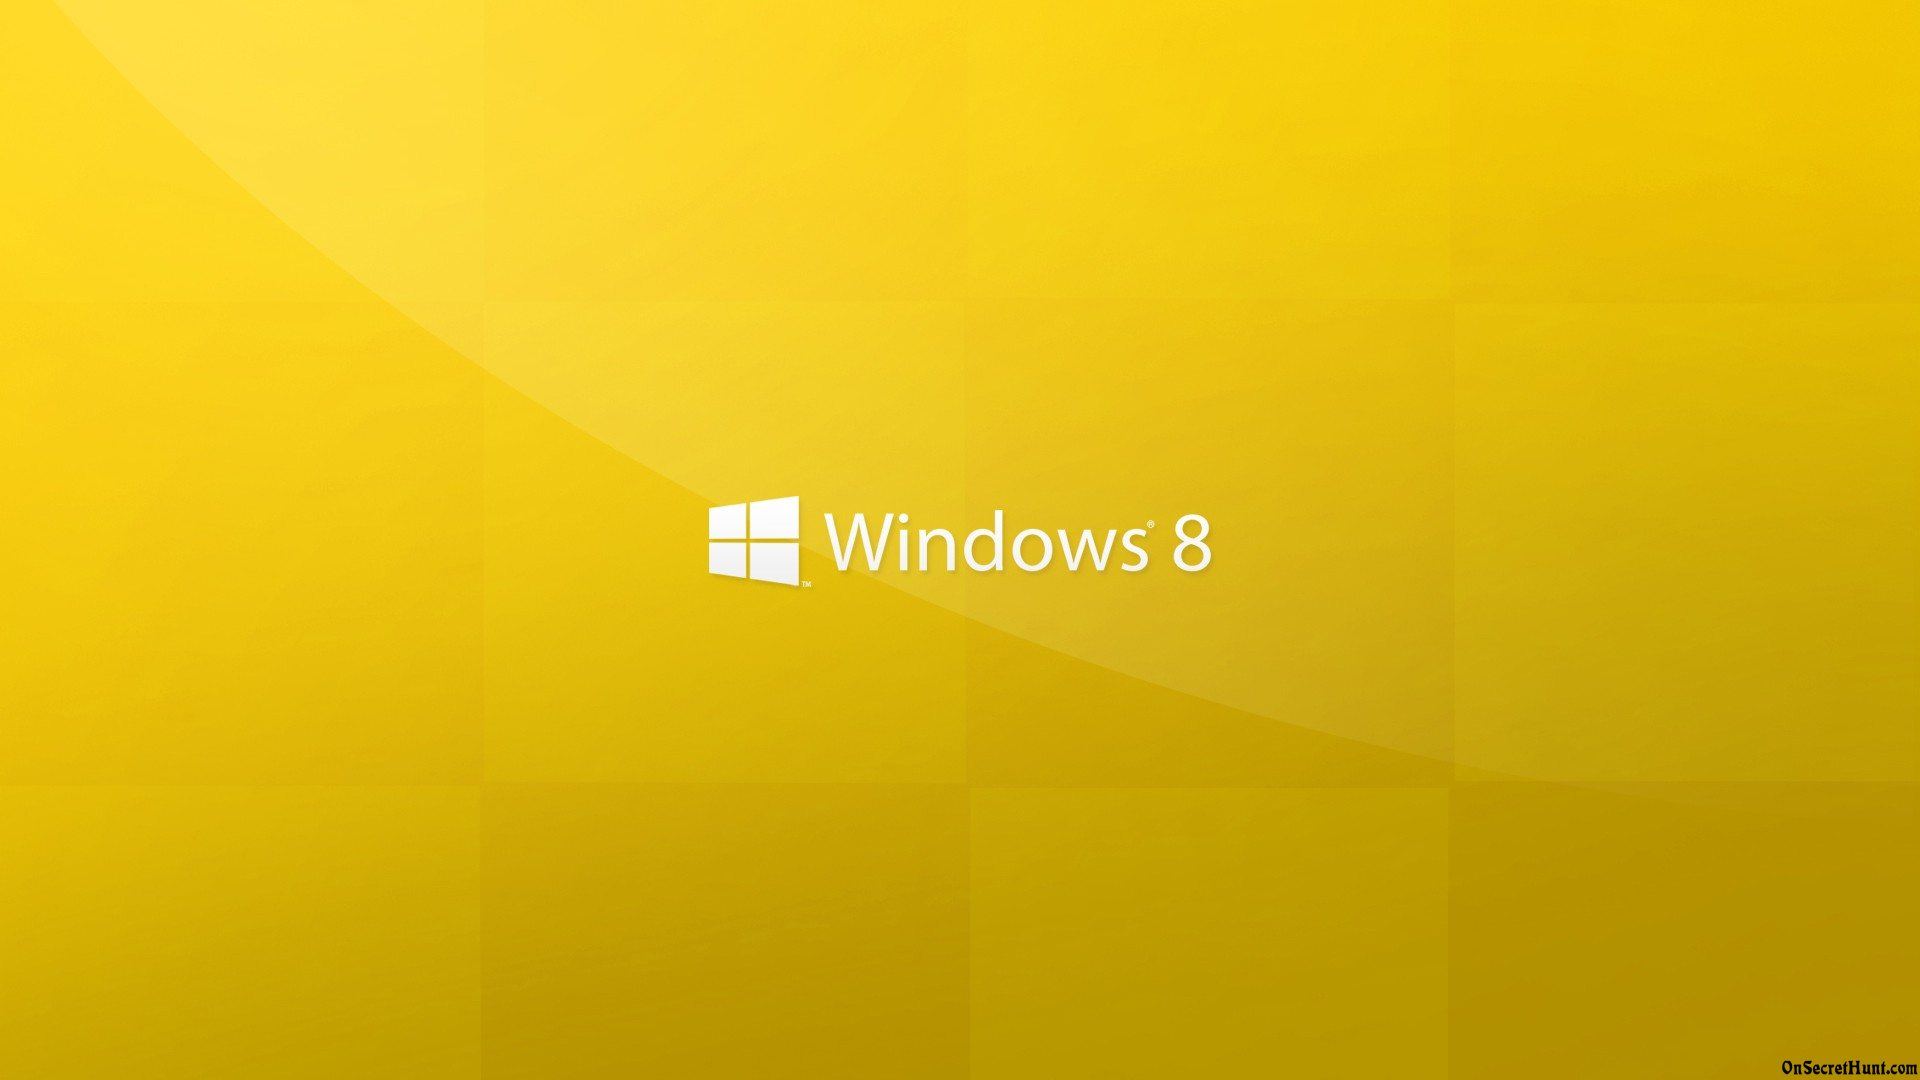 Windows 8 yellow